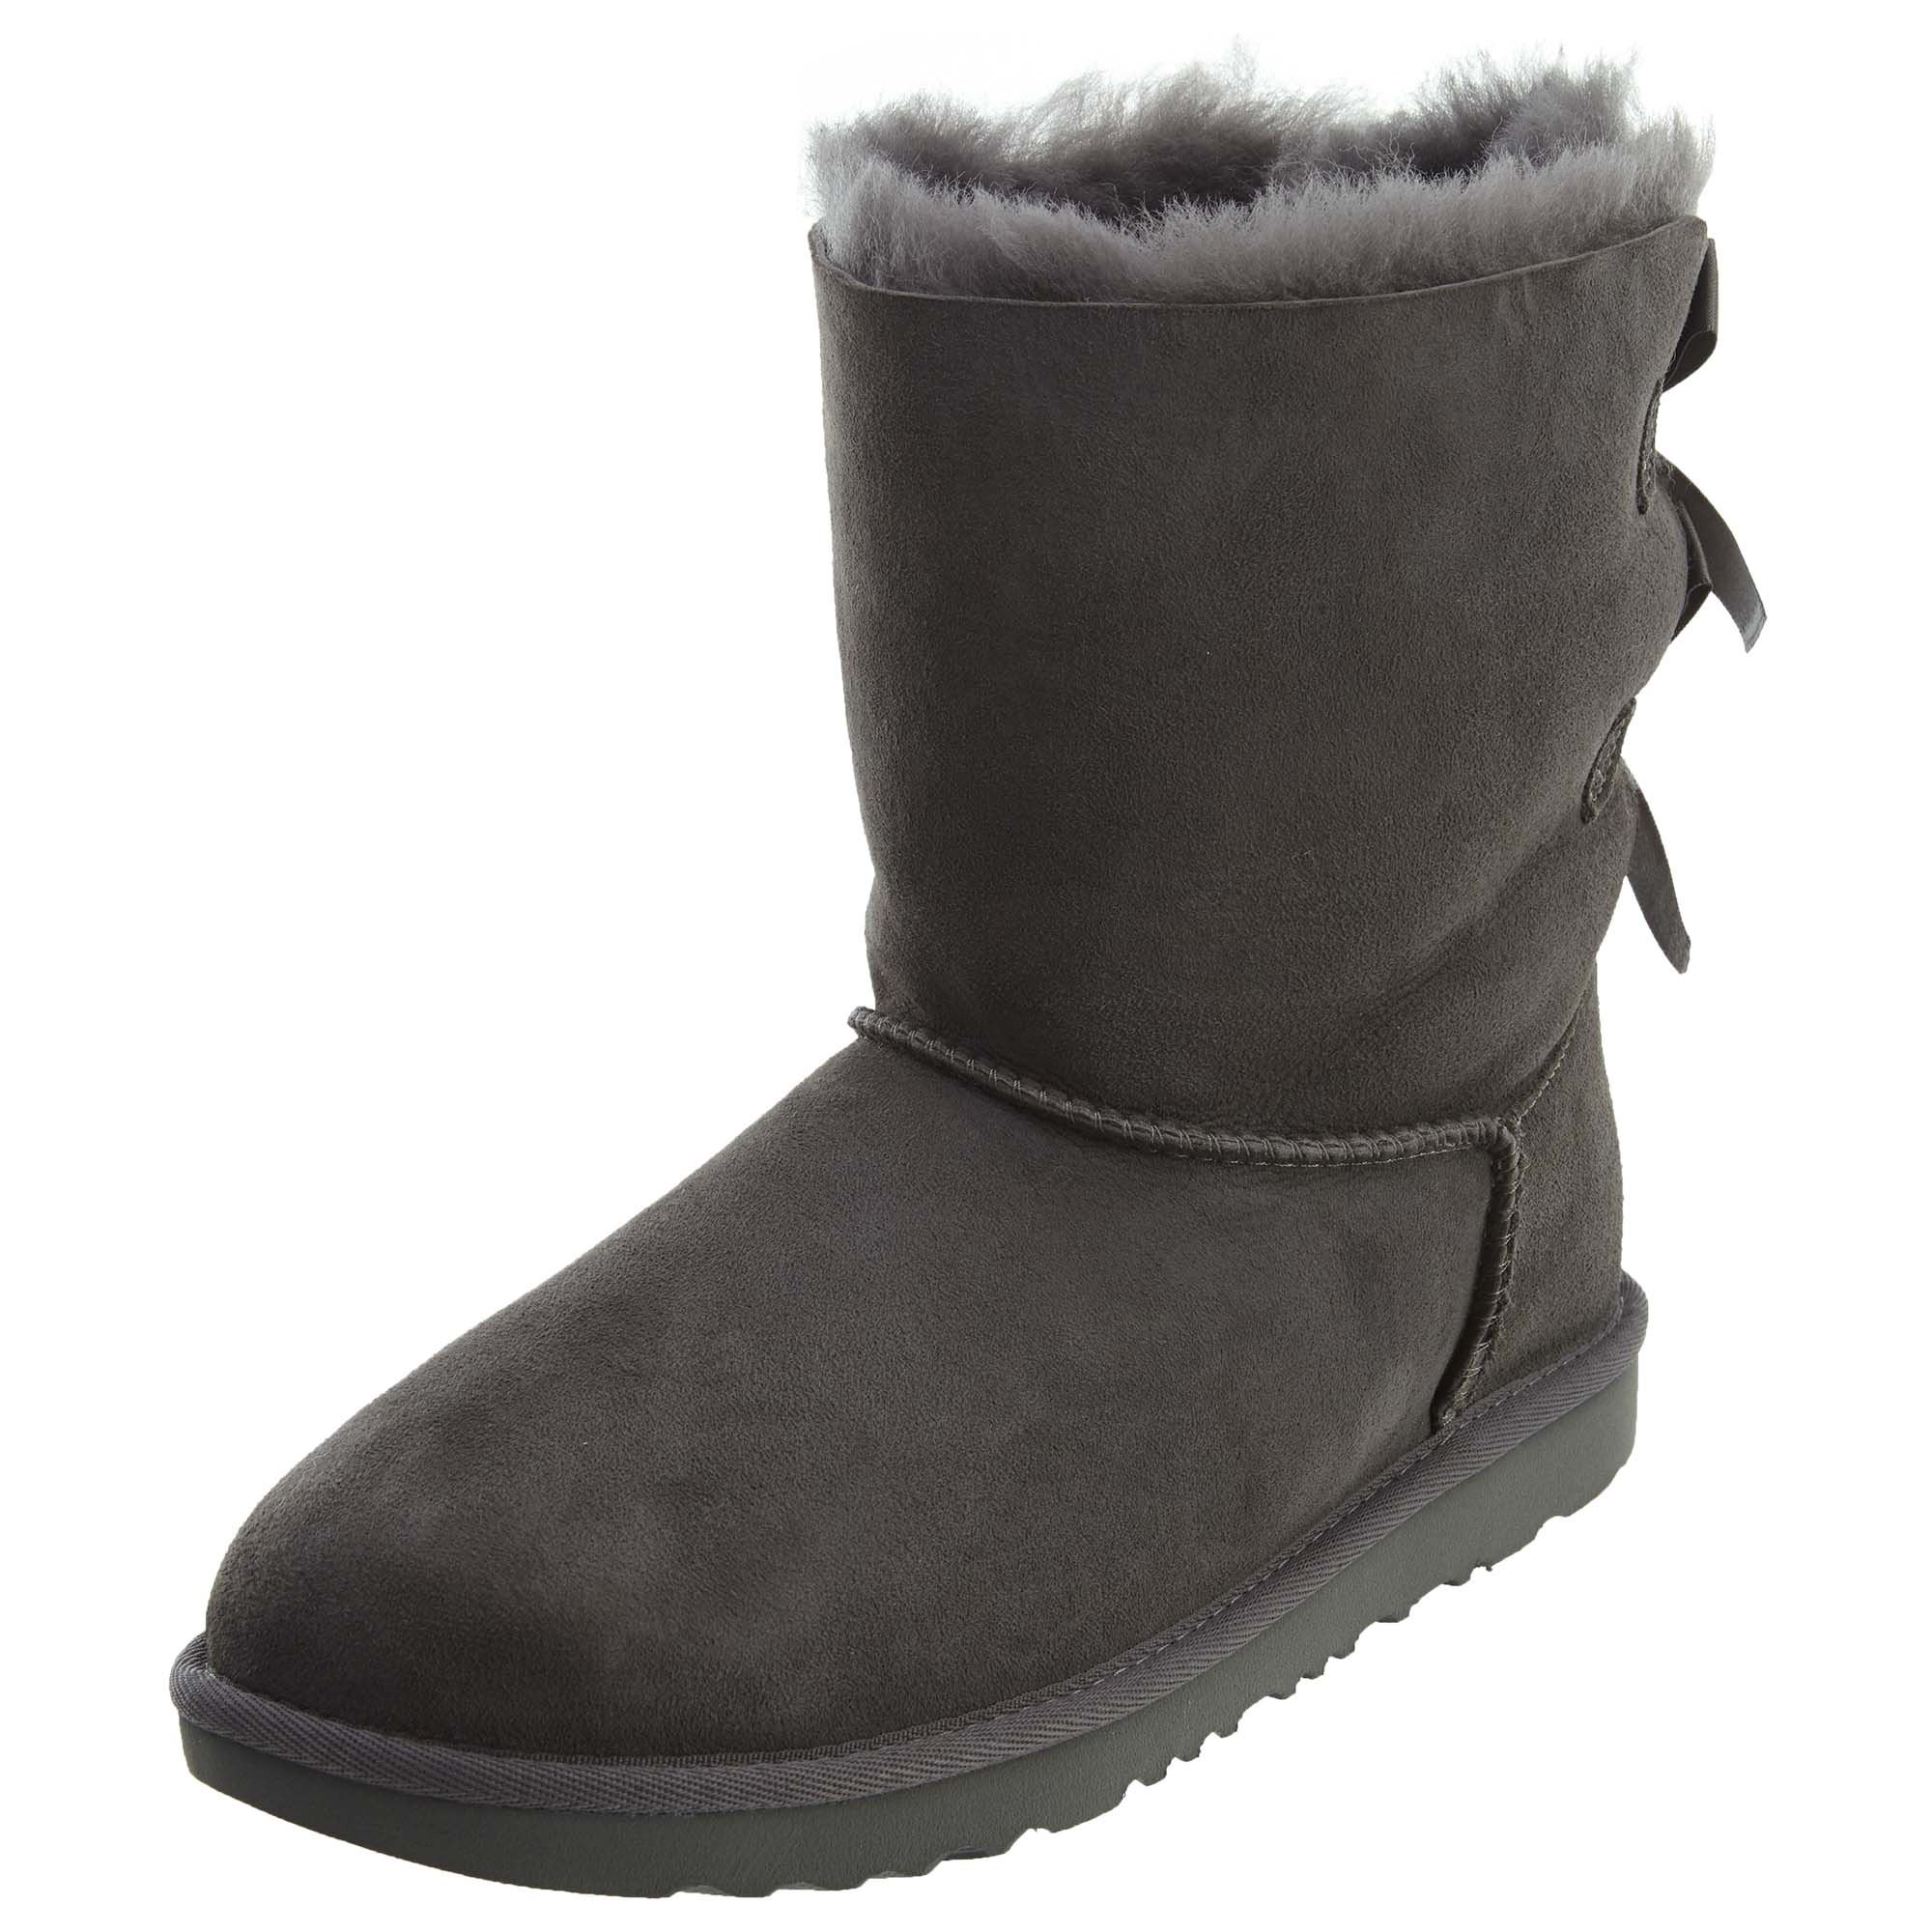 3cced3174af Details about UGG Big Kids Girls Bailey Bow II Boots Grey 1017394Y